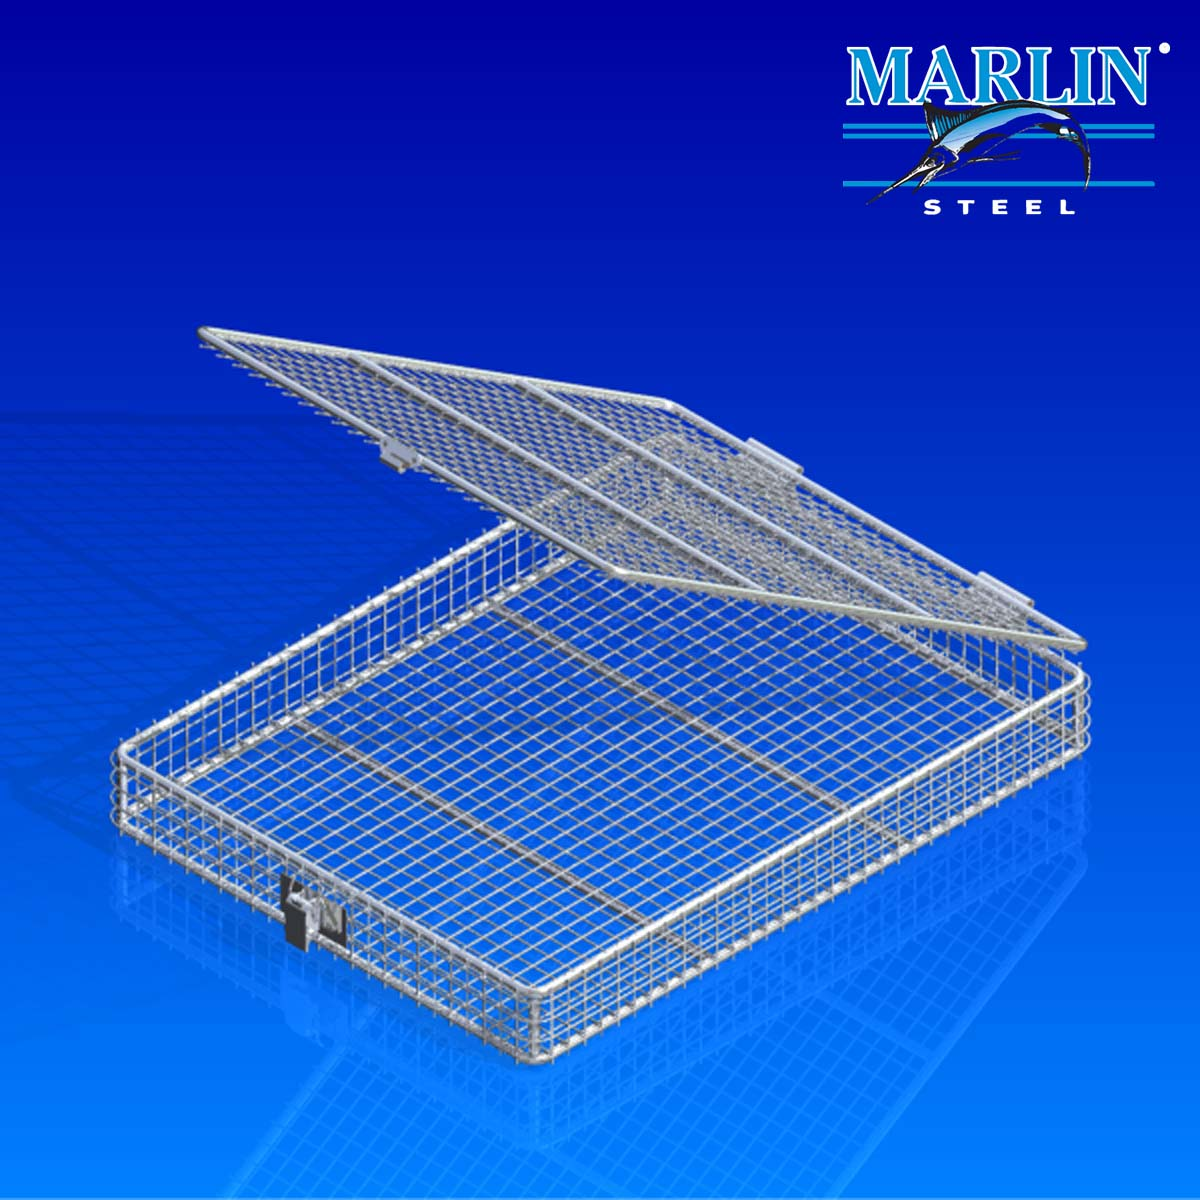 The final design of the basket was similar to basket #789001